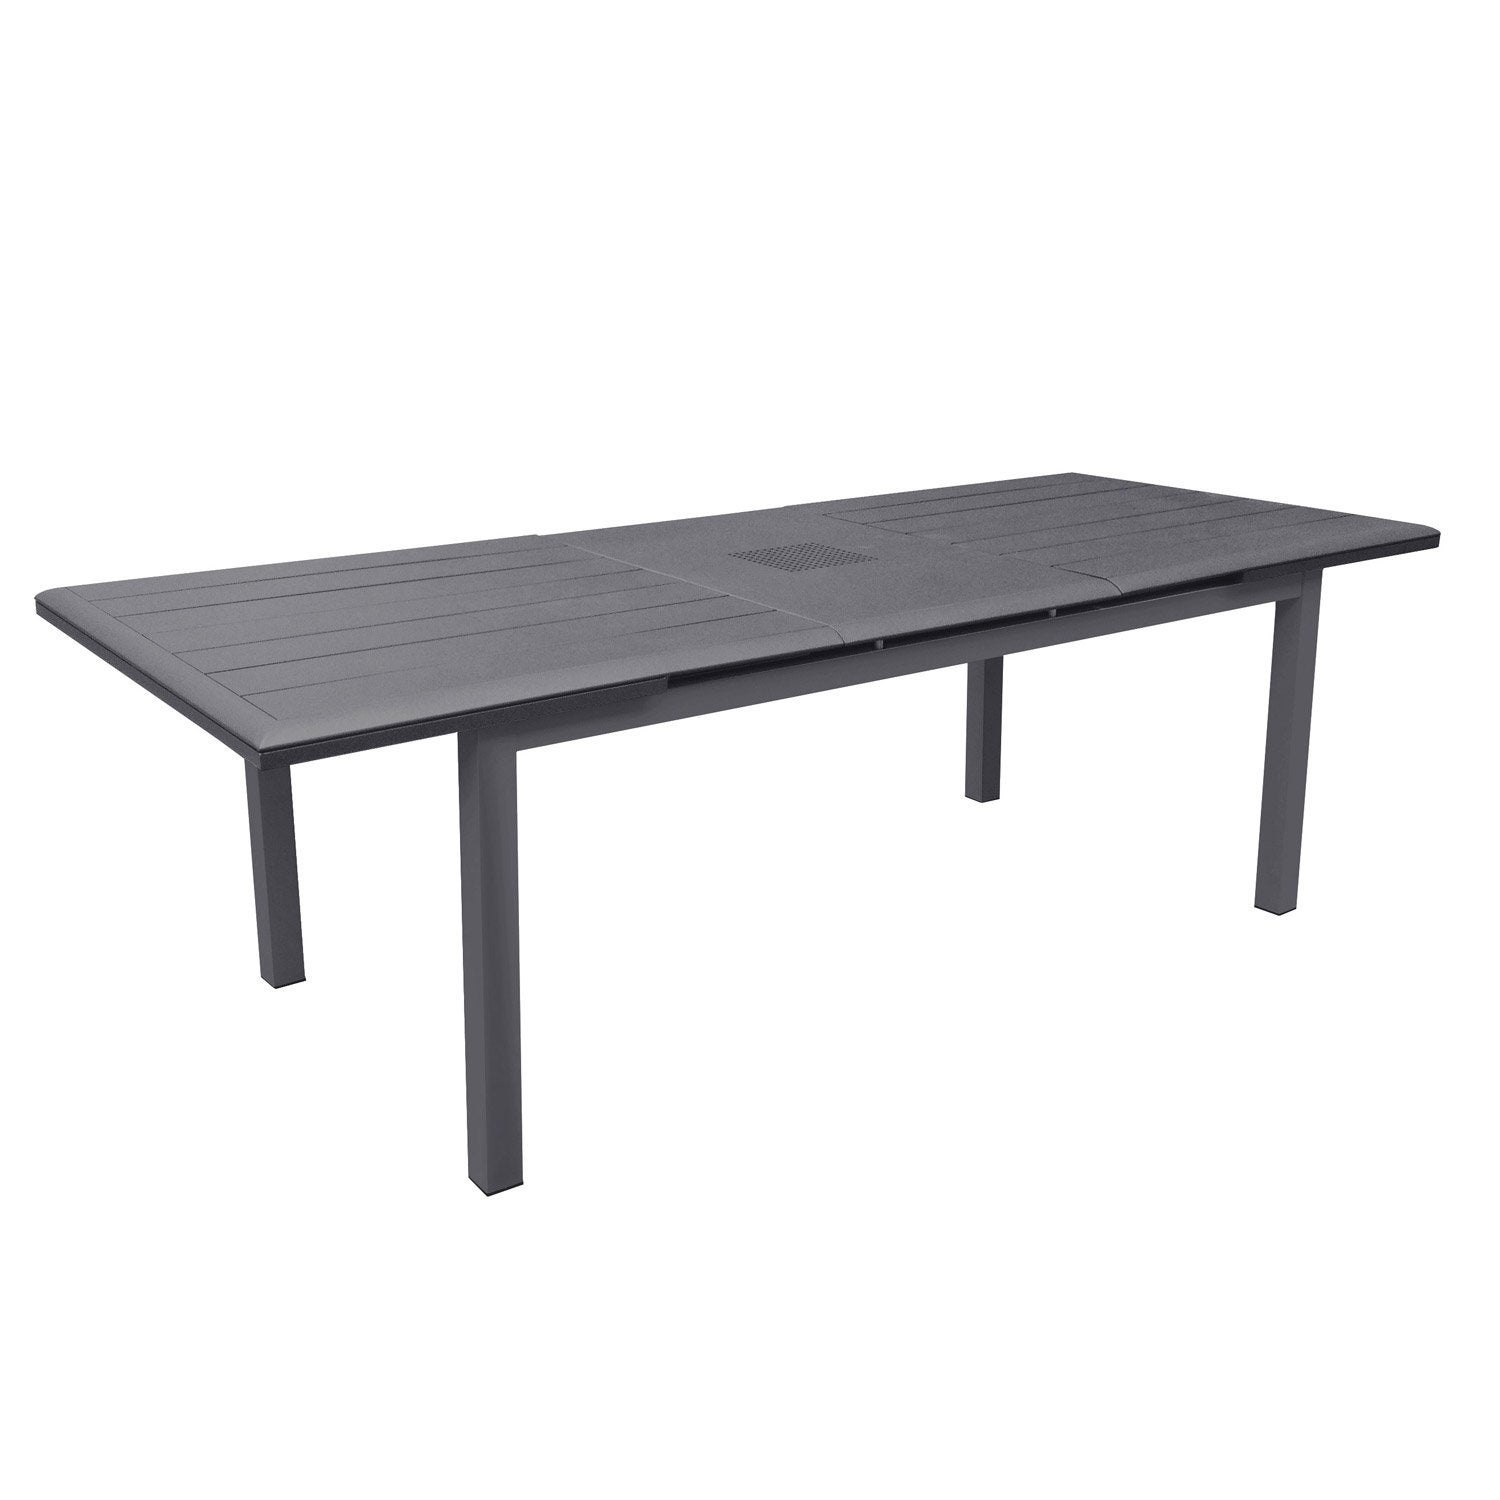 Table de jardin louisiane rectangulaire gris 6 8 personnes for Table 6 personnes dimension